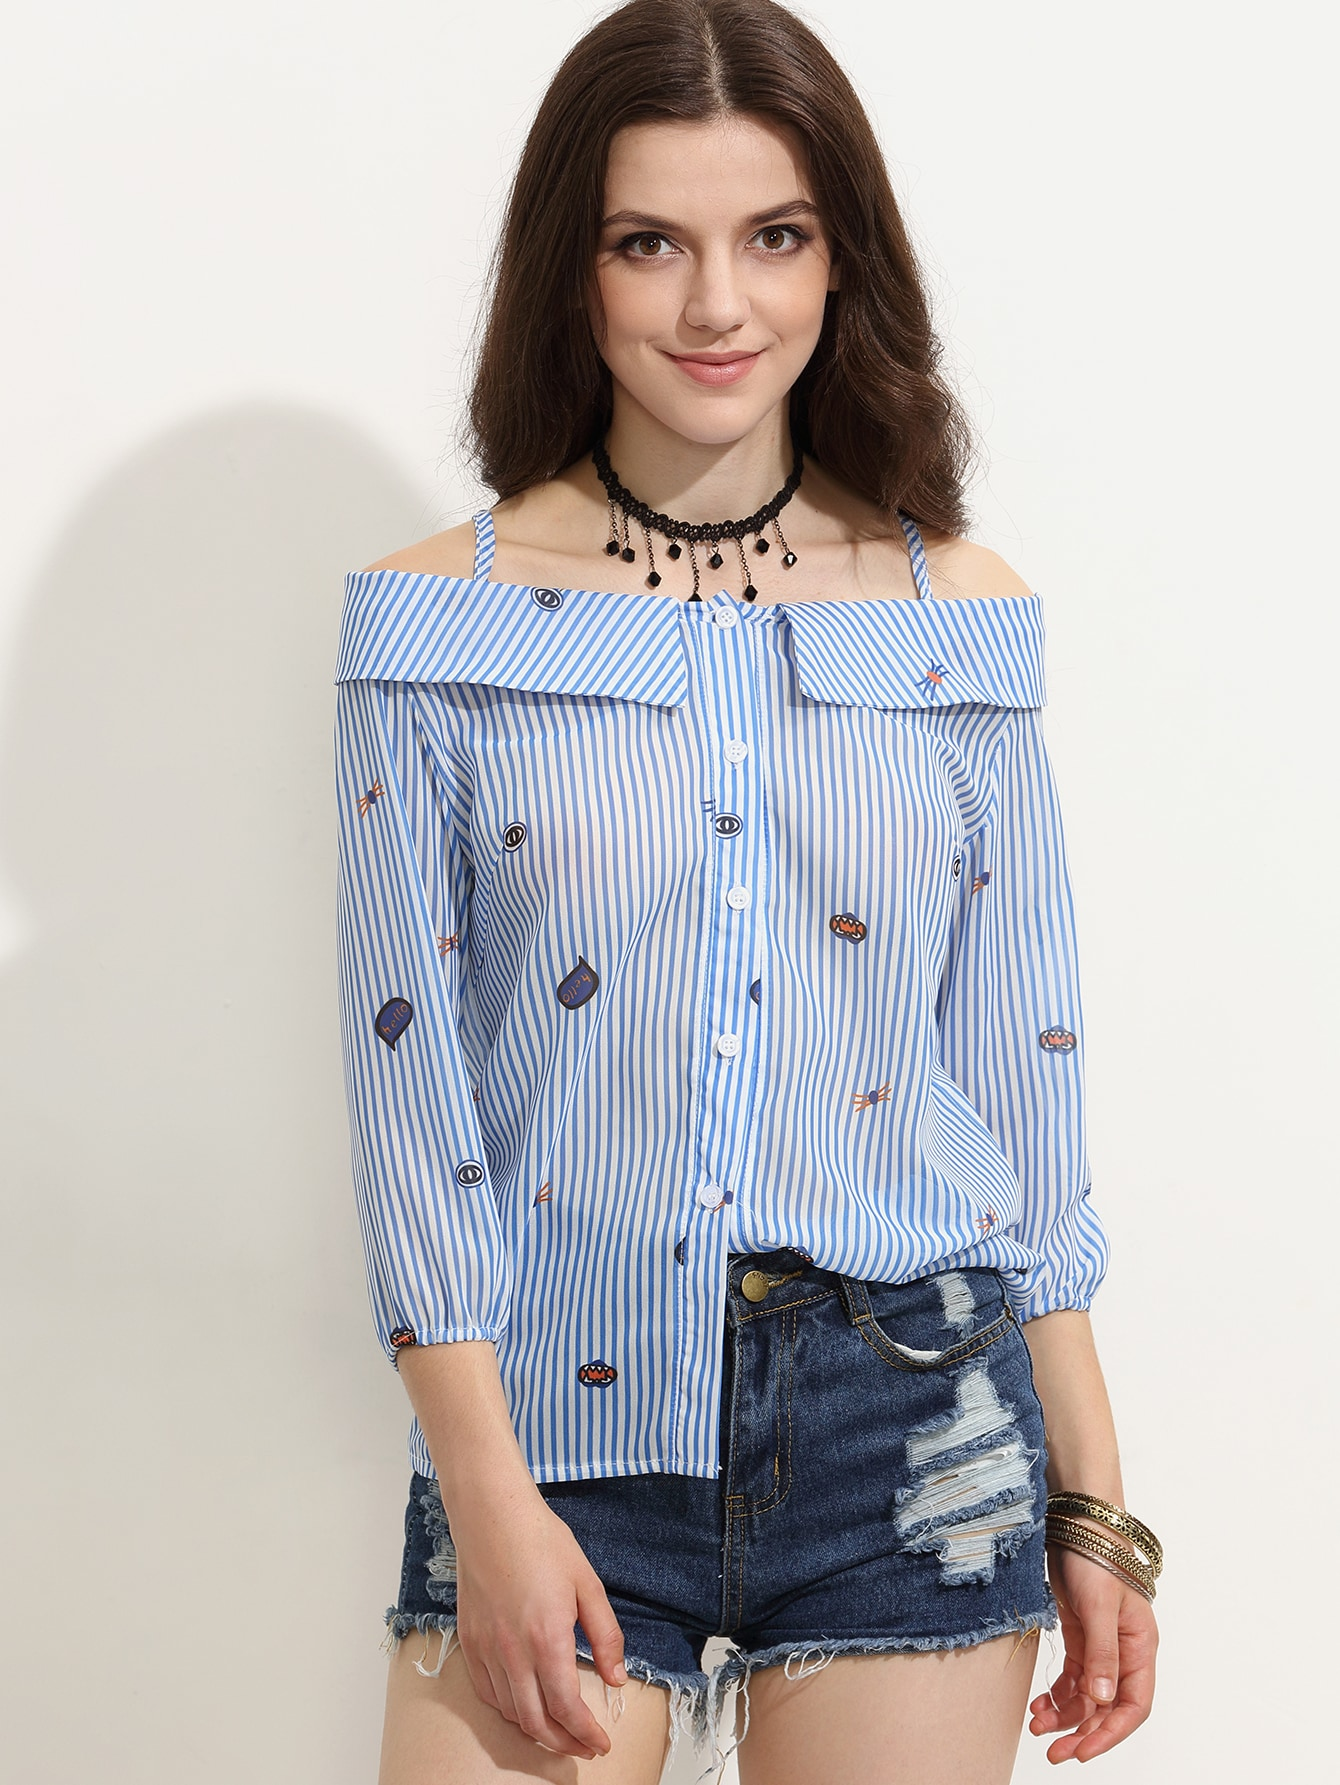 Blue Striped Cartoon Print Cold Shoulder Fold Over Blouse blouse160713304